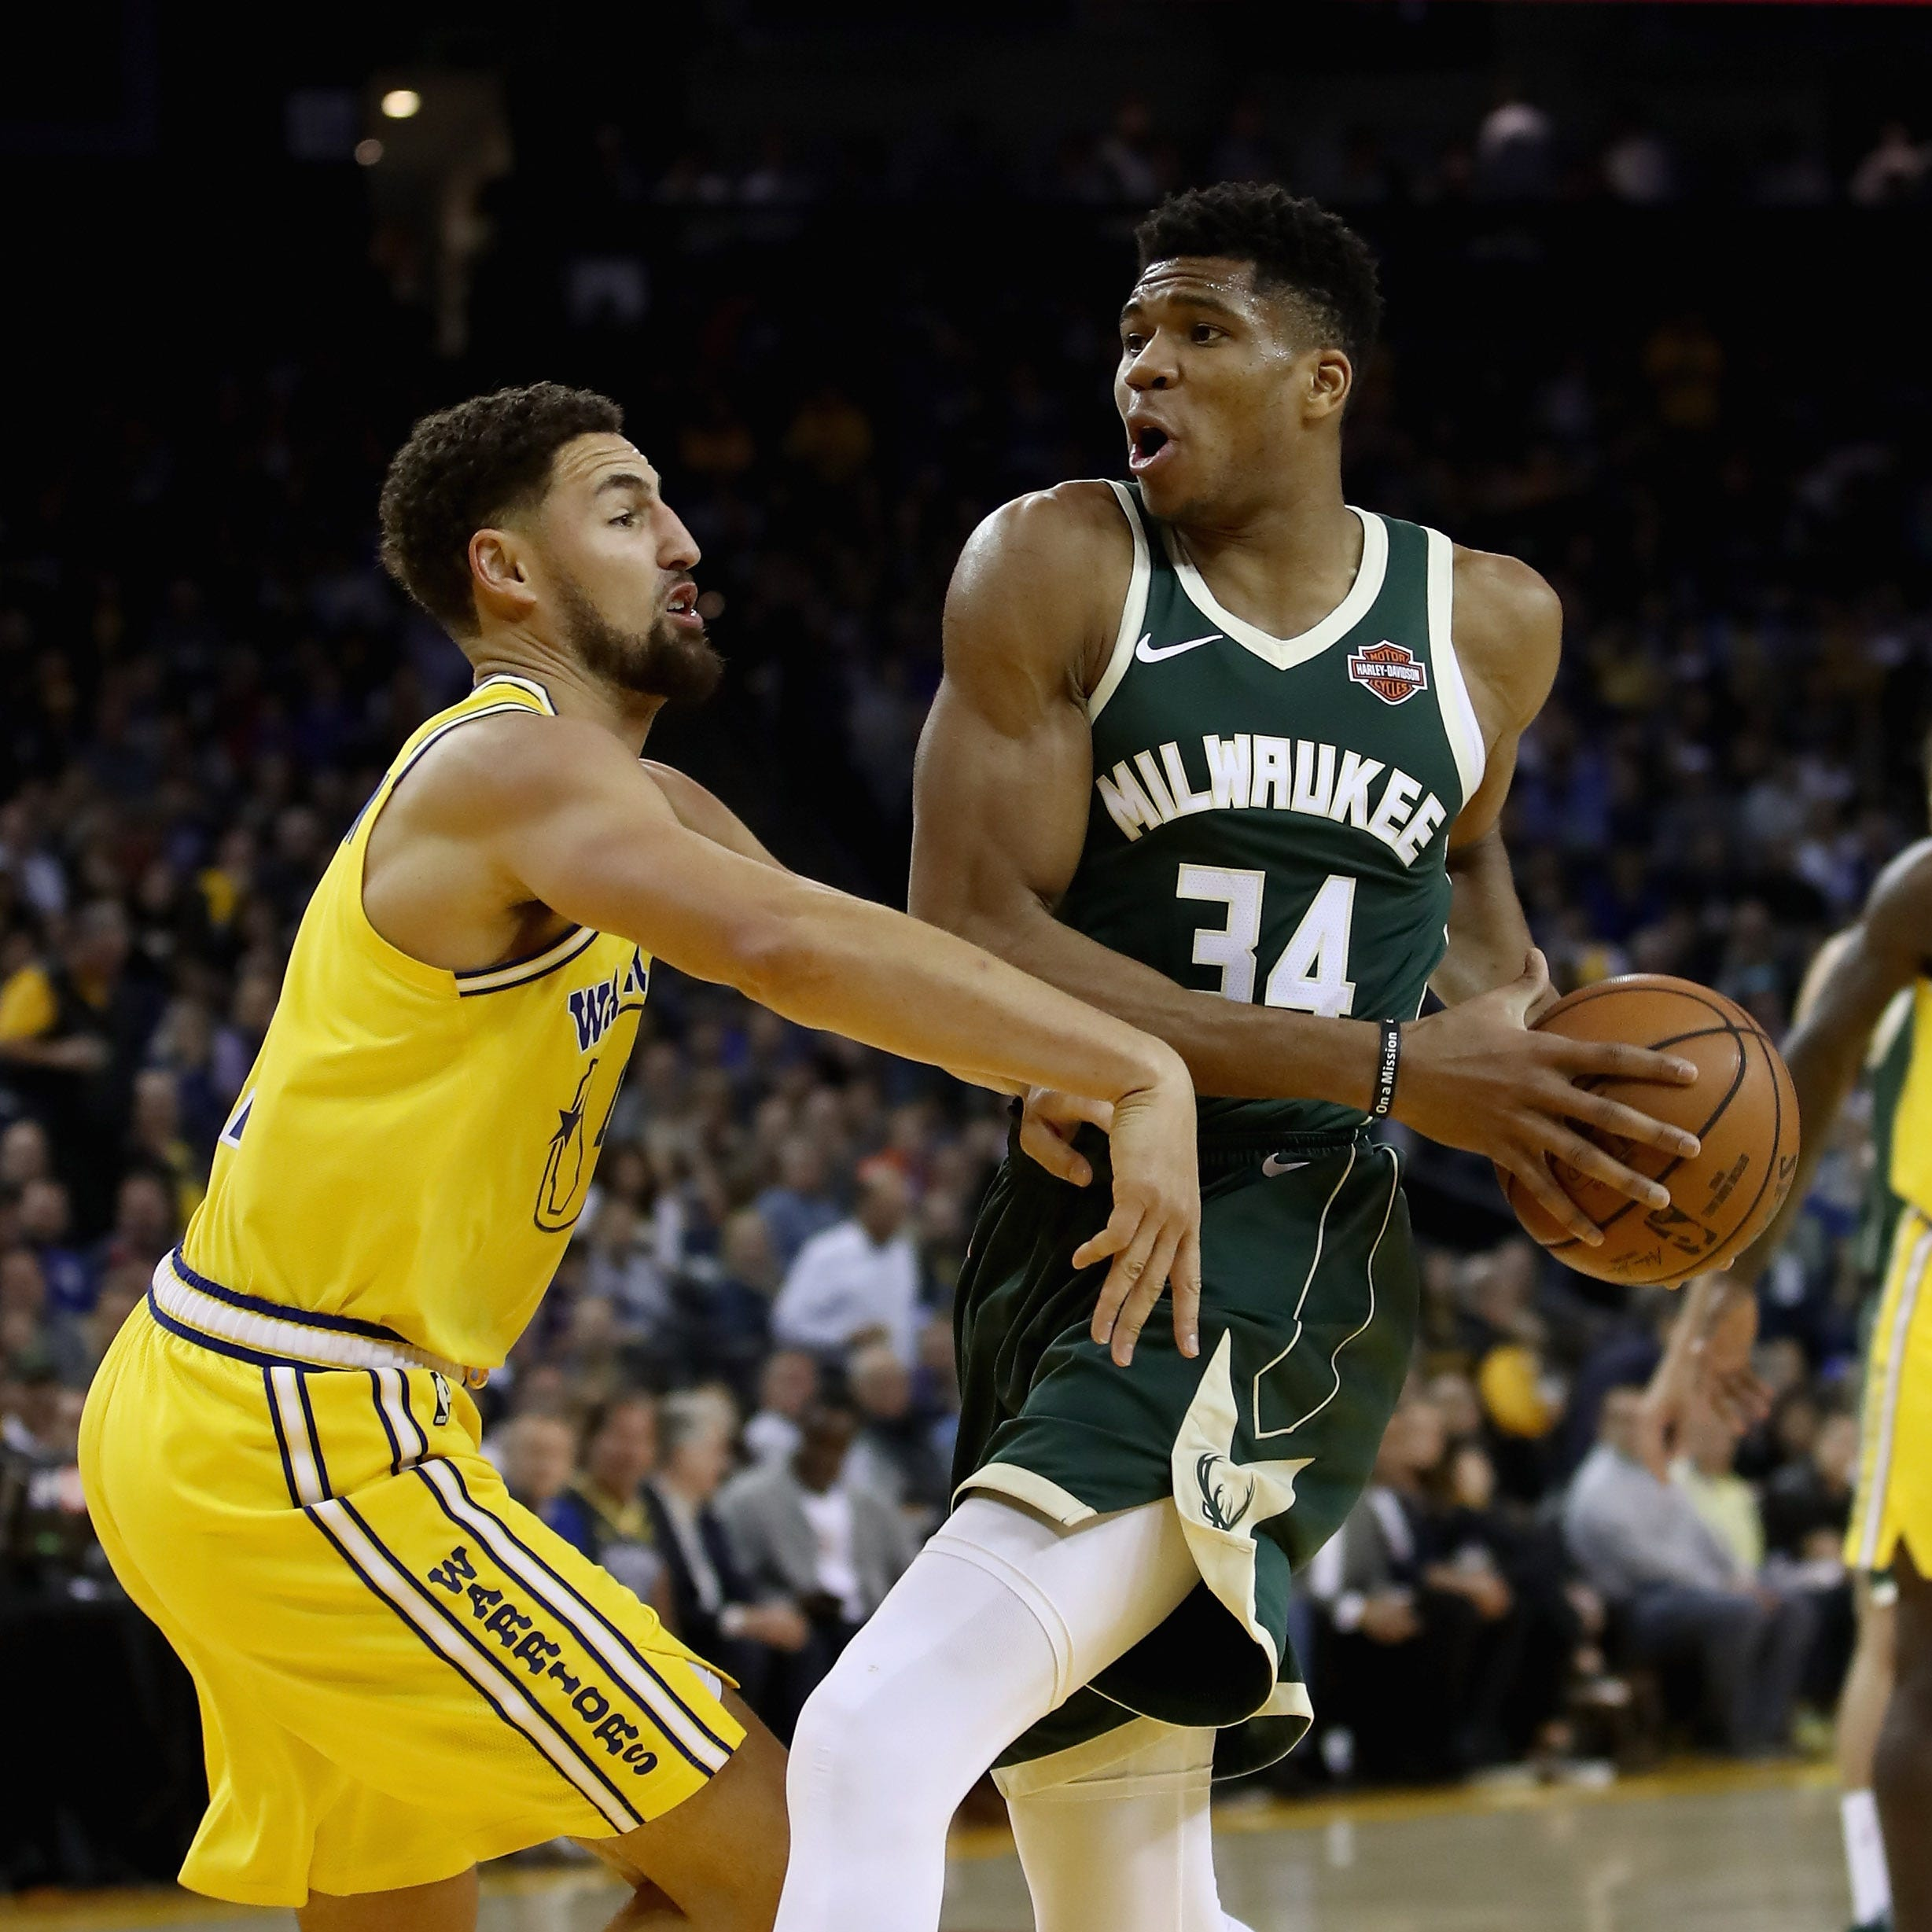 The Bucks collected some national attention after Thursday night's blowout win over the Golden State Warriors